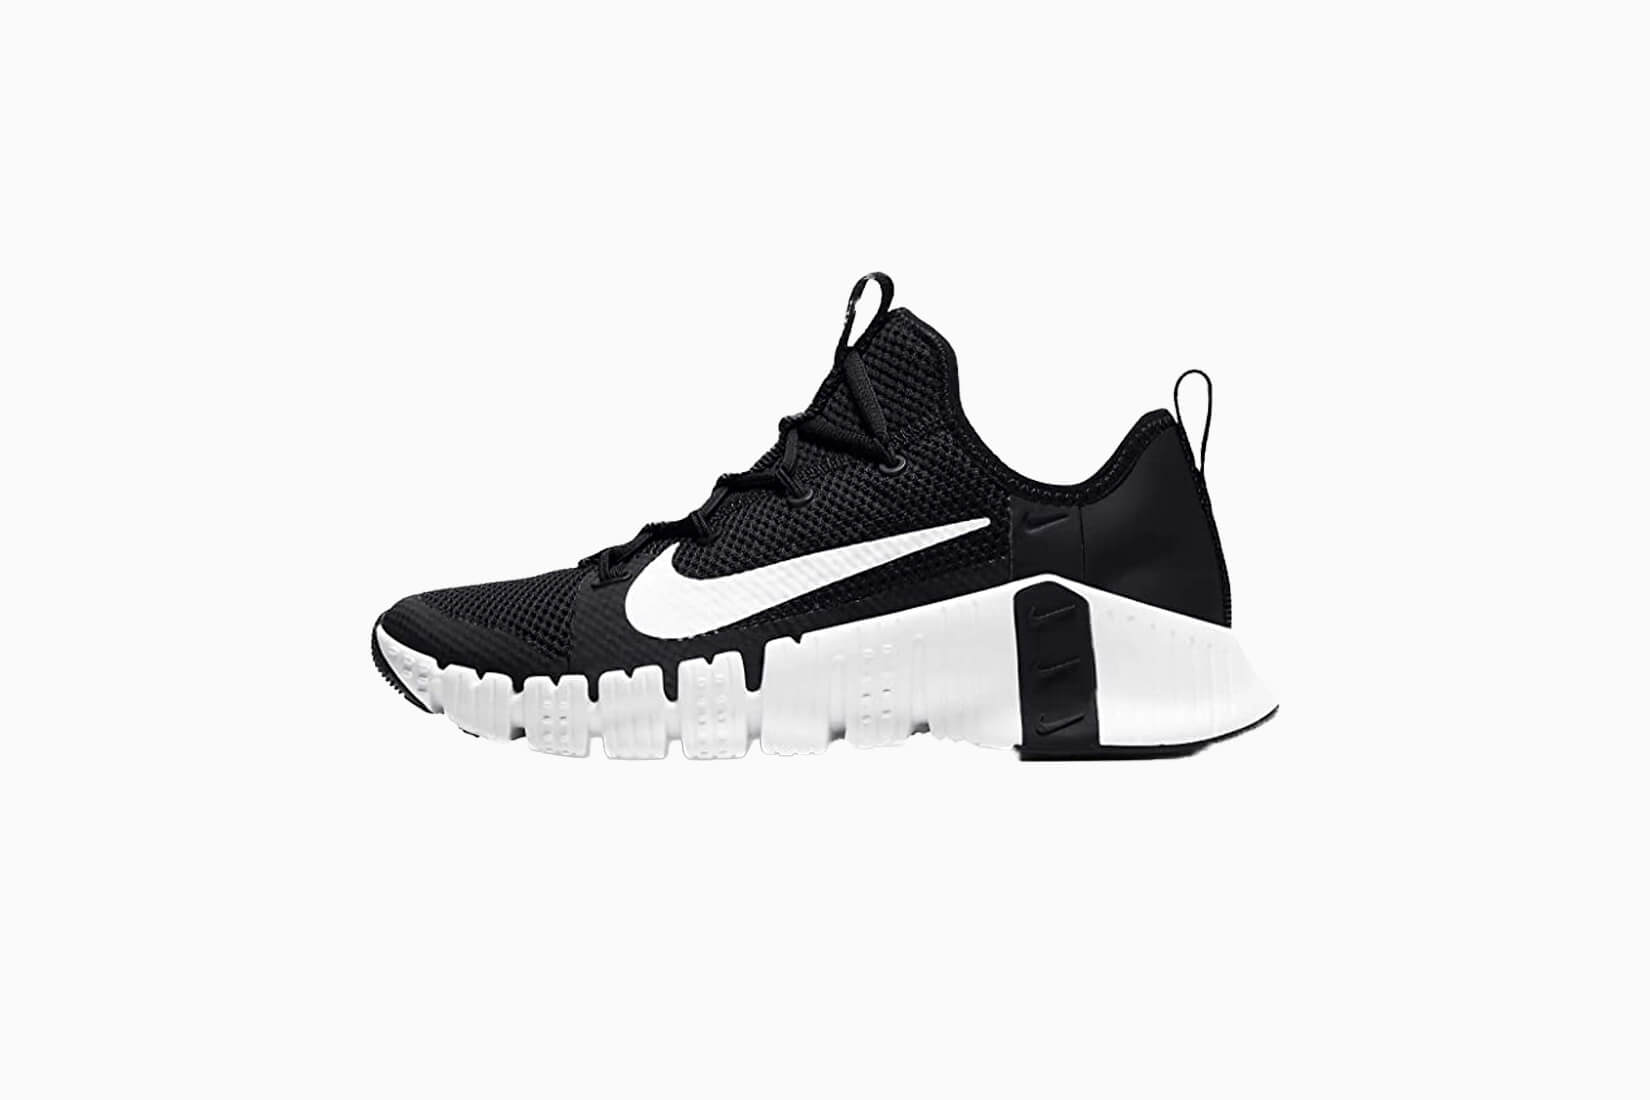 best workout shoes women nike metcon review - Luxe Digital